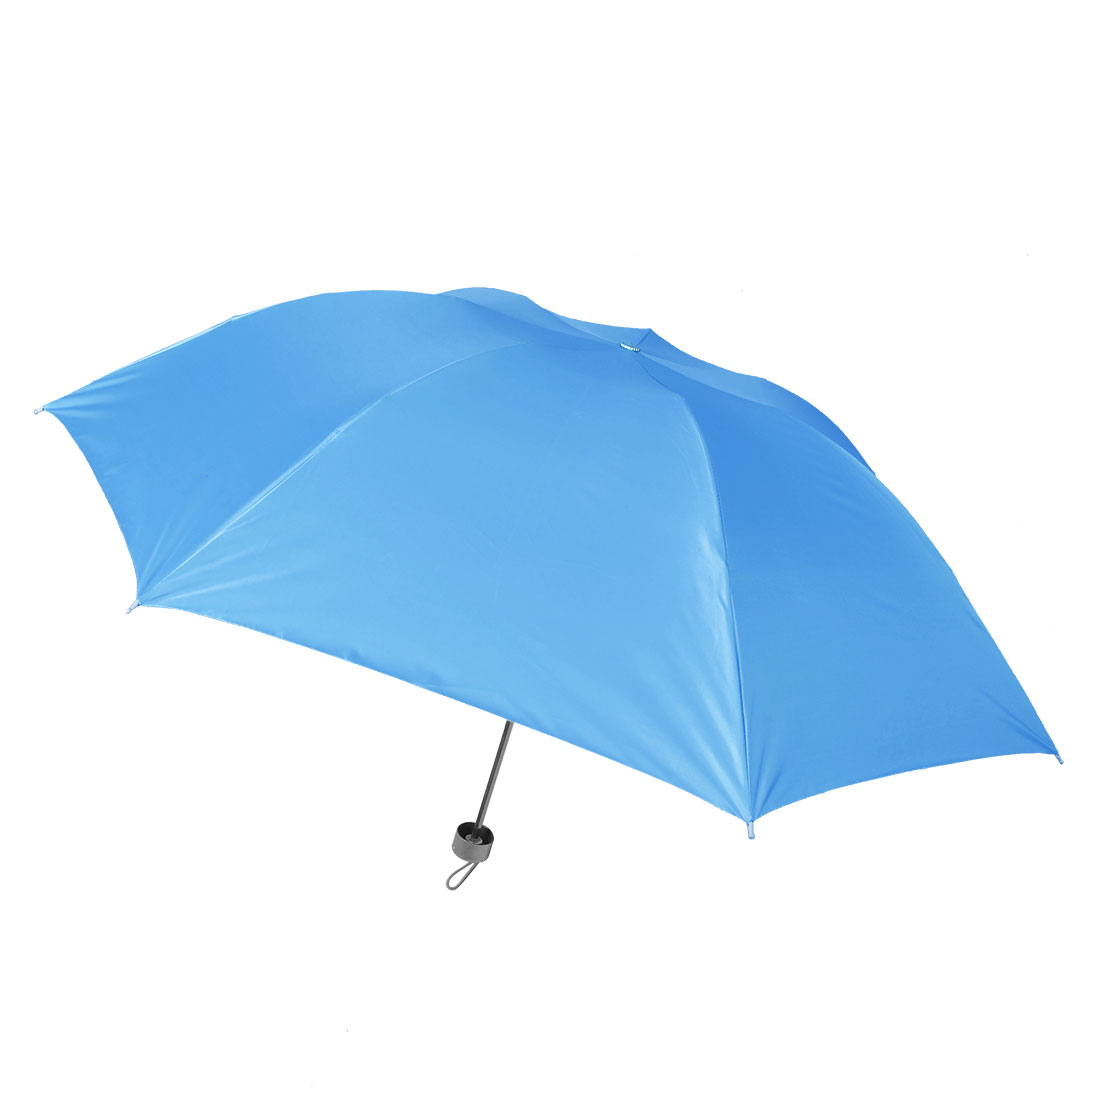 Sky Blue Water Resistant Canopy Telescopic Shaft Folding Rain Umbrella